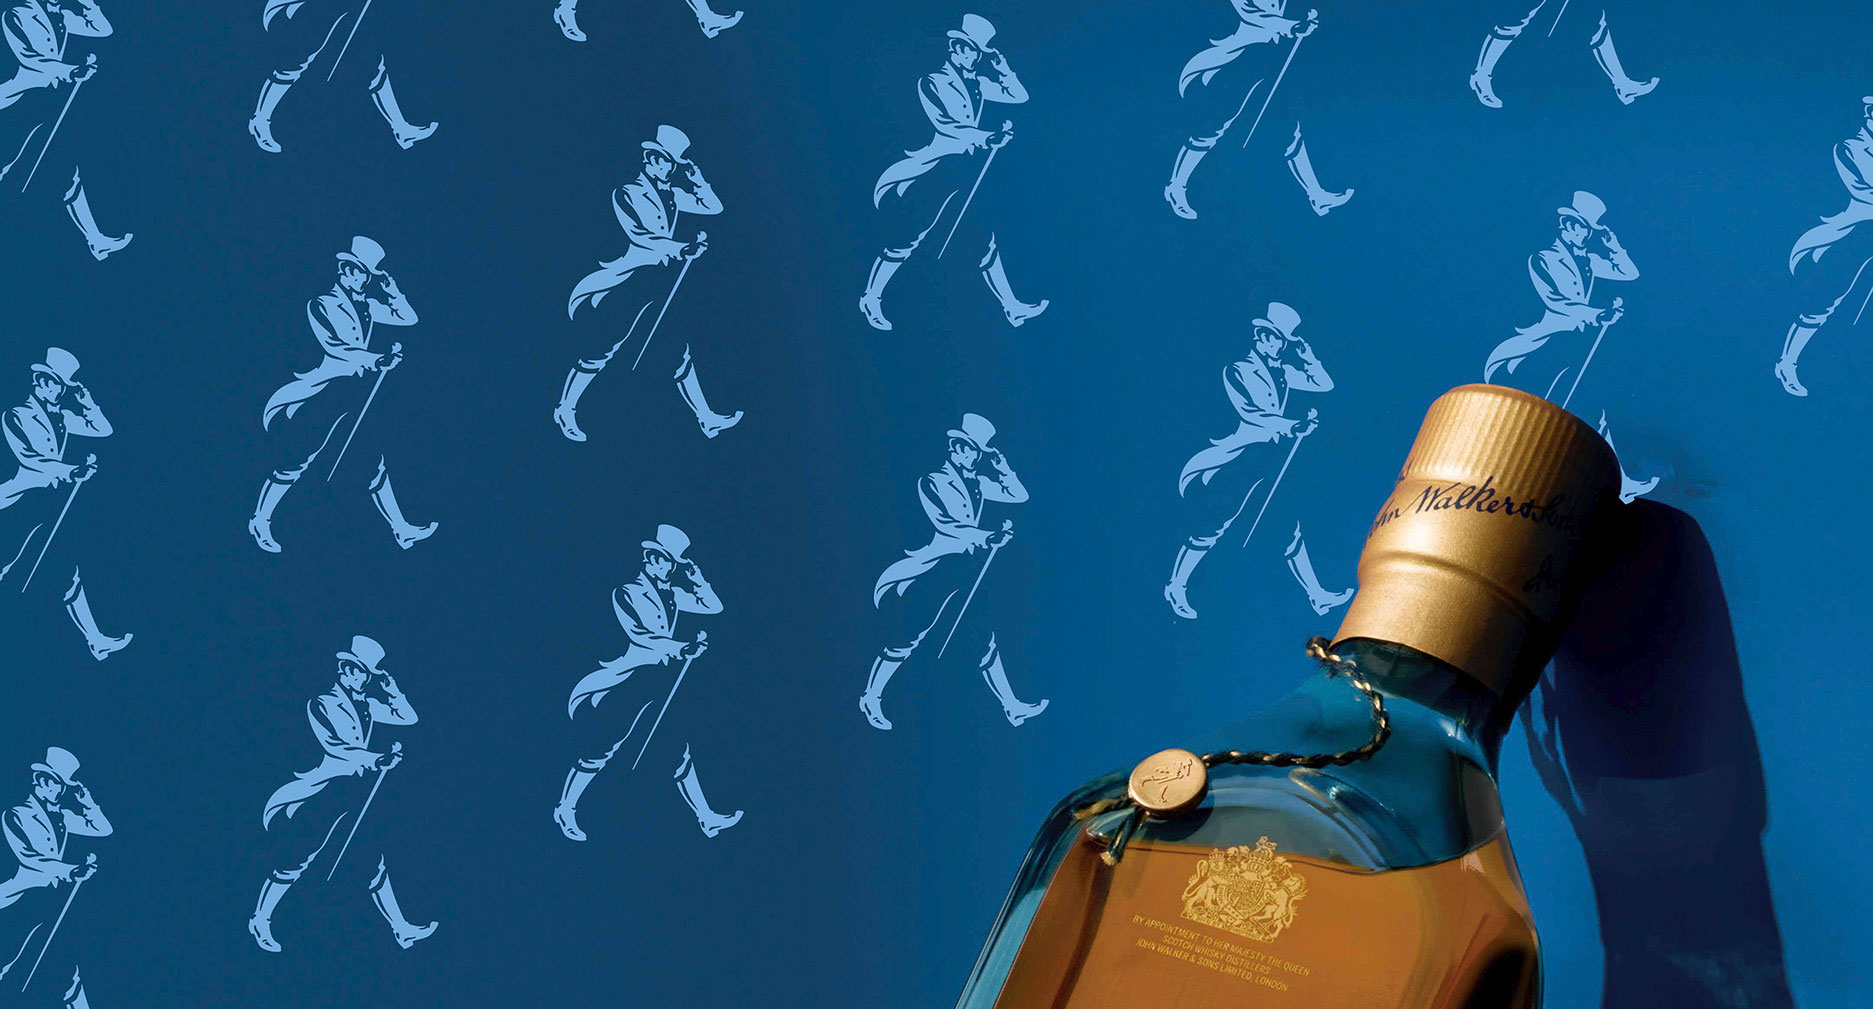 Johnnie Walker Steps Into A New Era With A Vibrant Look And Feel photo